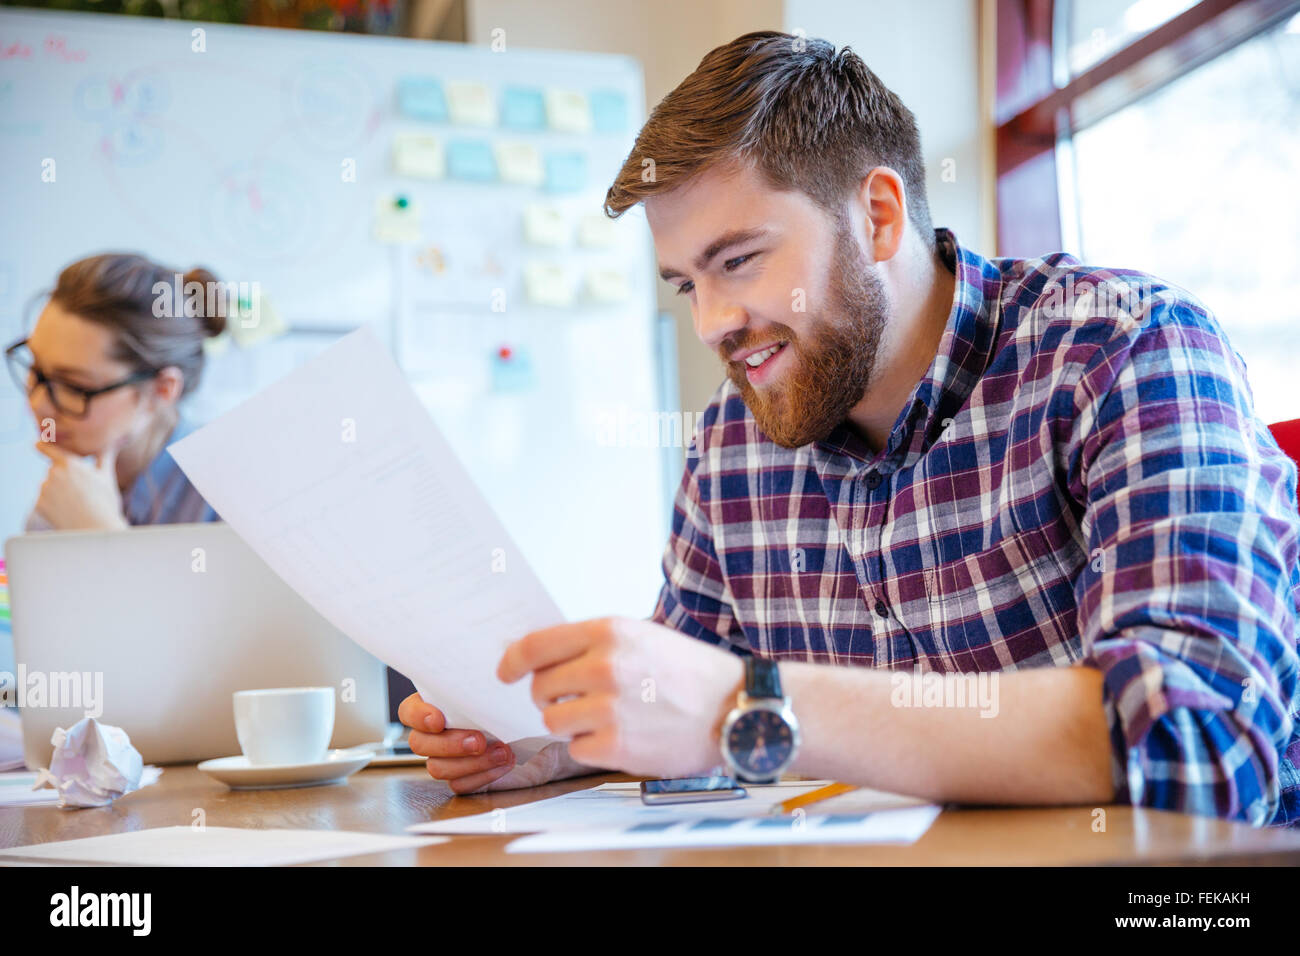 Happy young woman reading paper in office Photo Stock